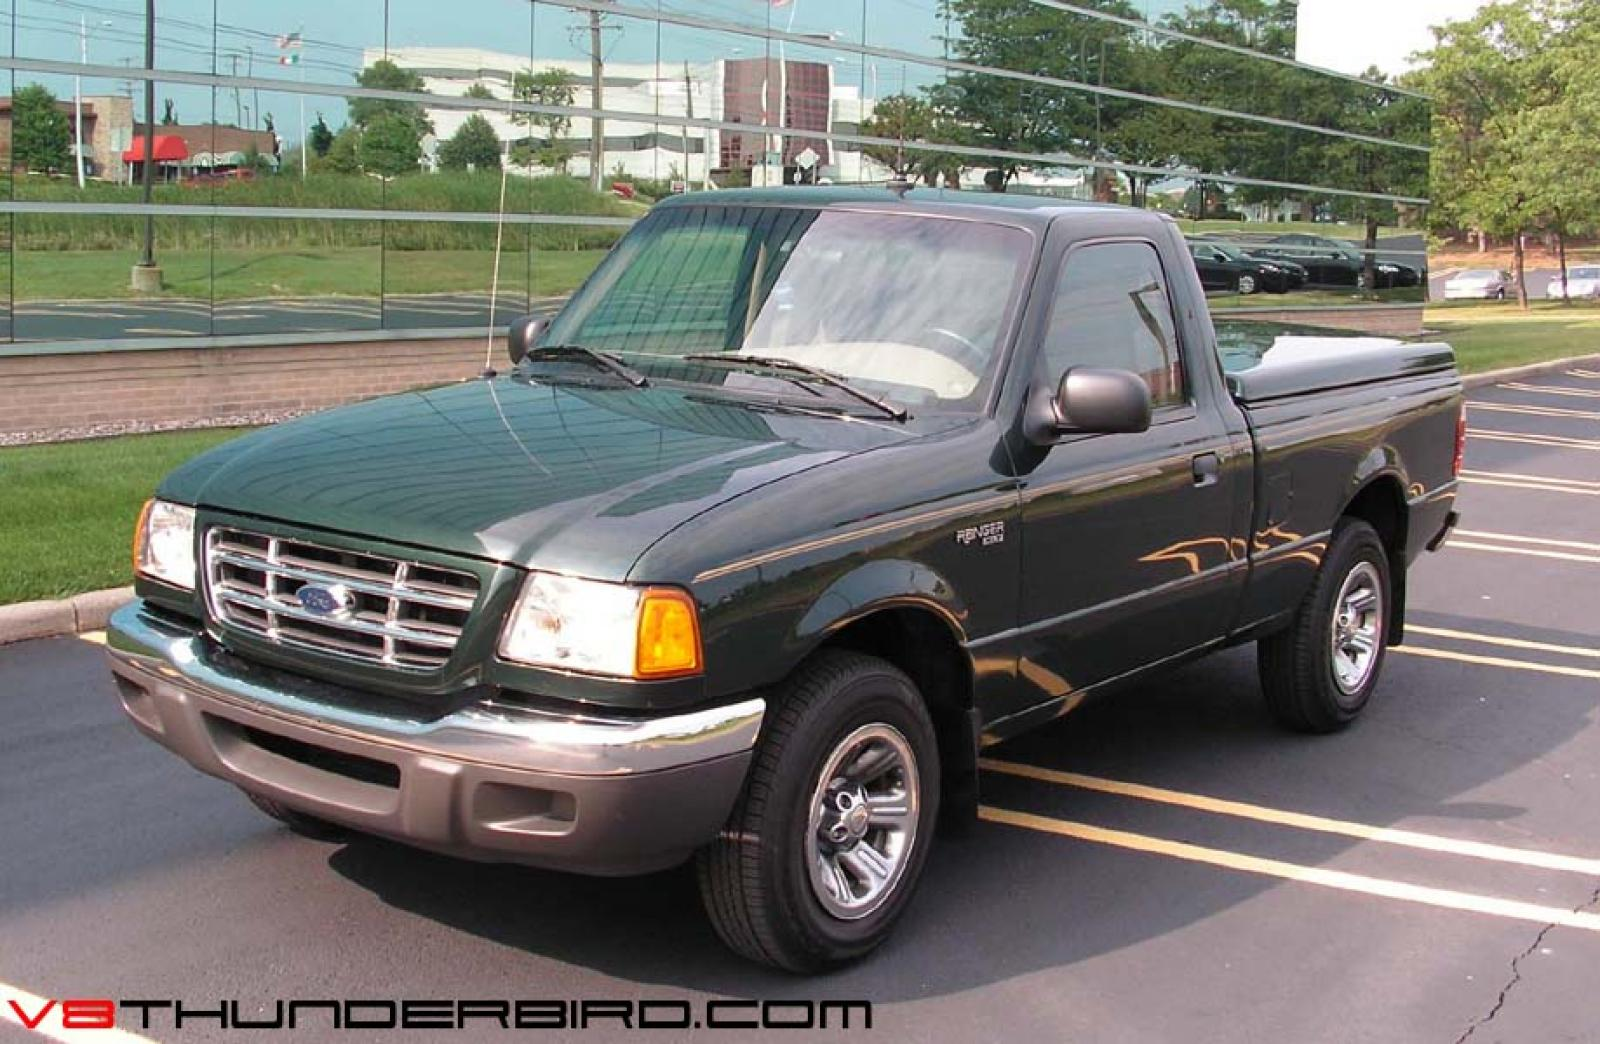 800 1024 1280 1600 origin 2002 ford ranger